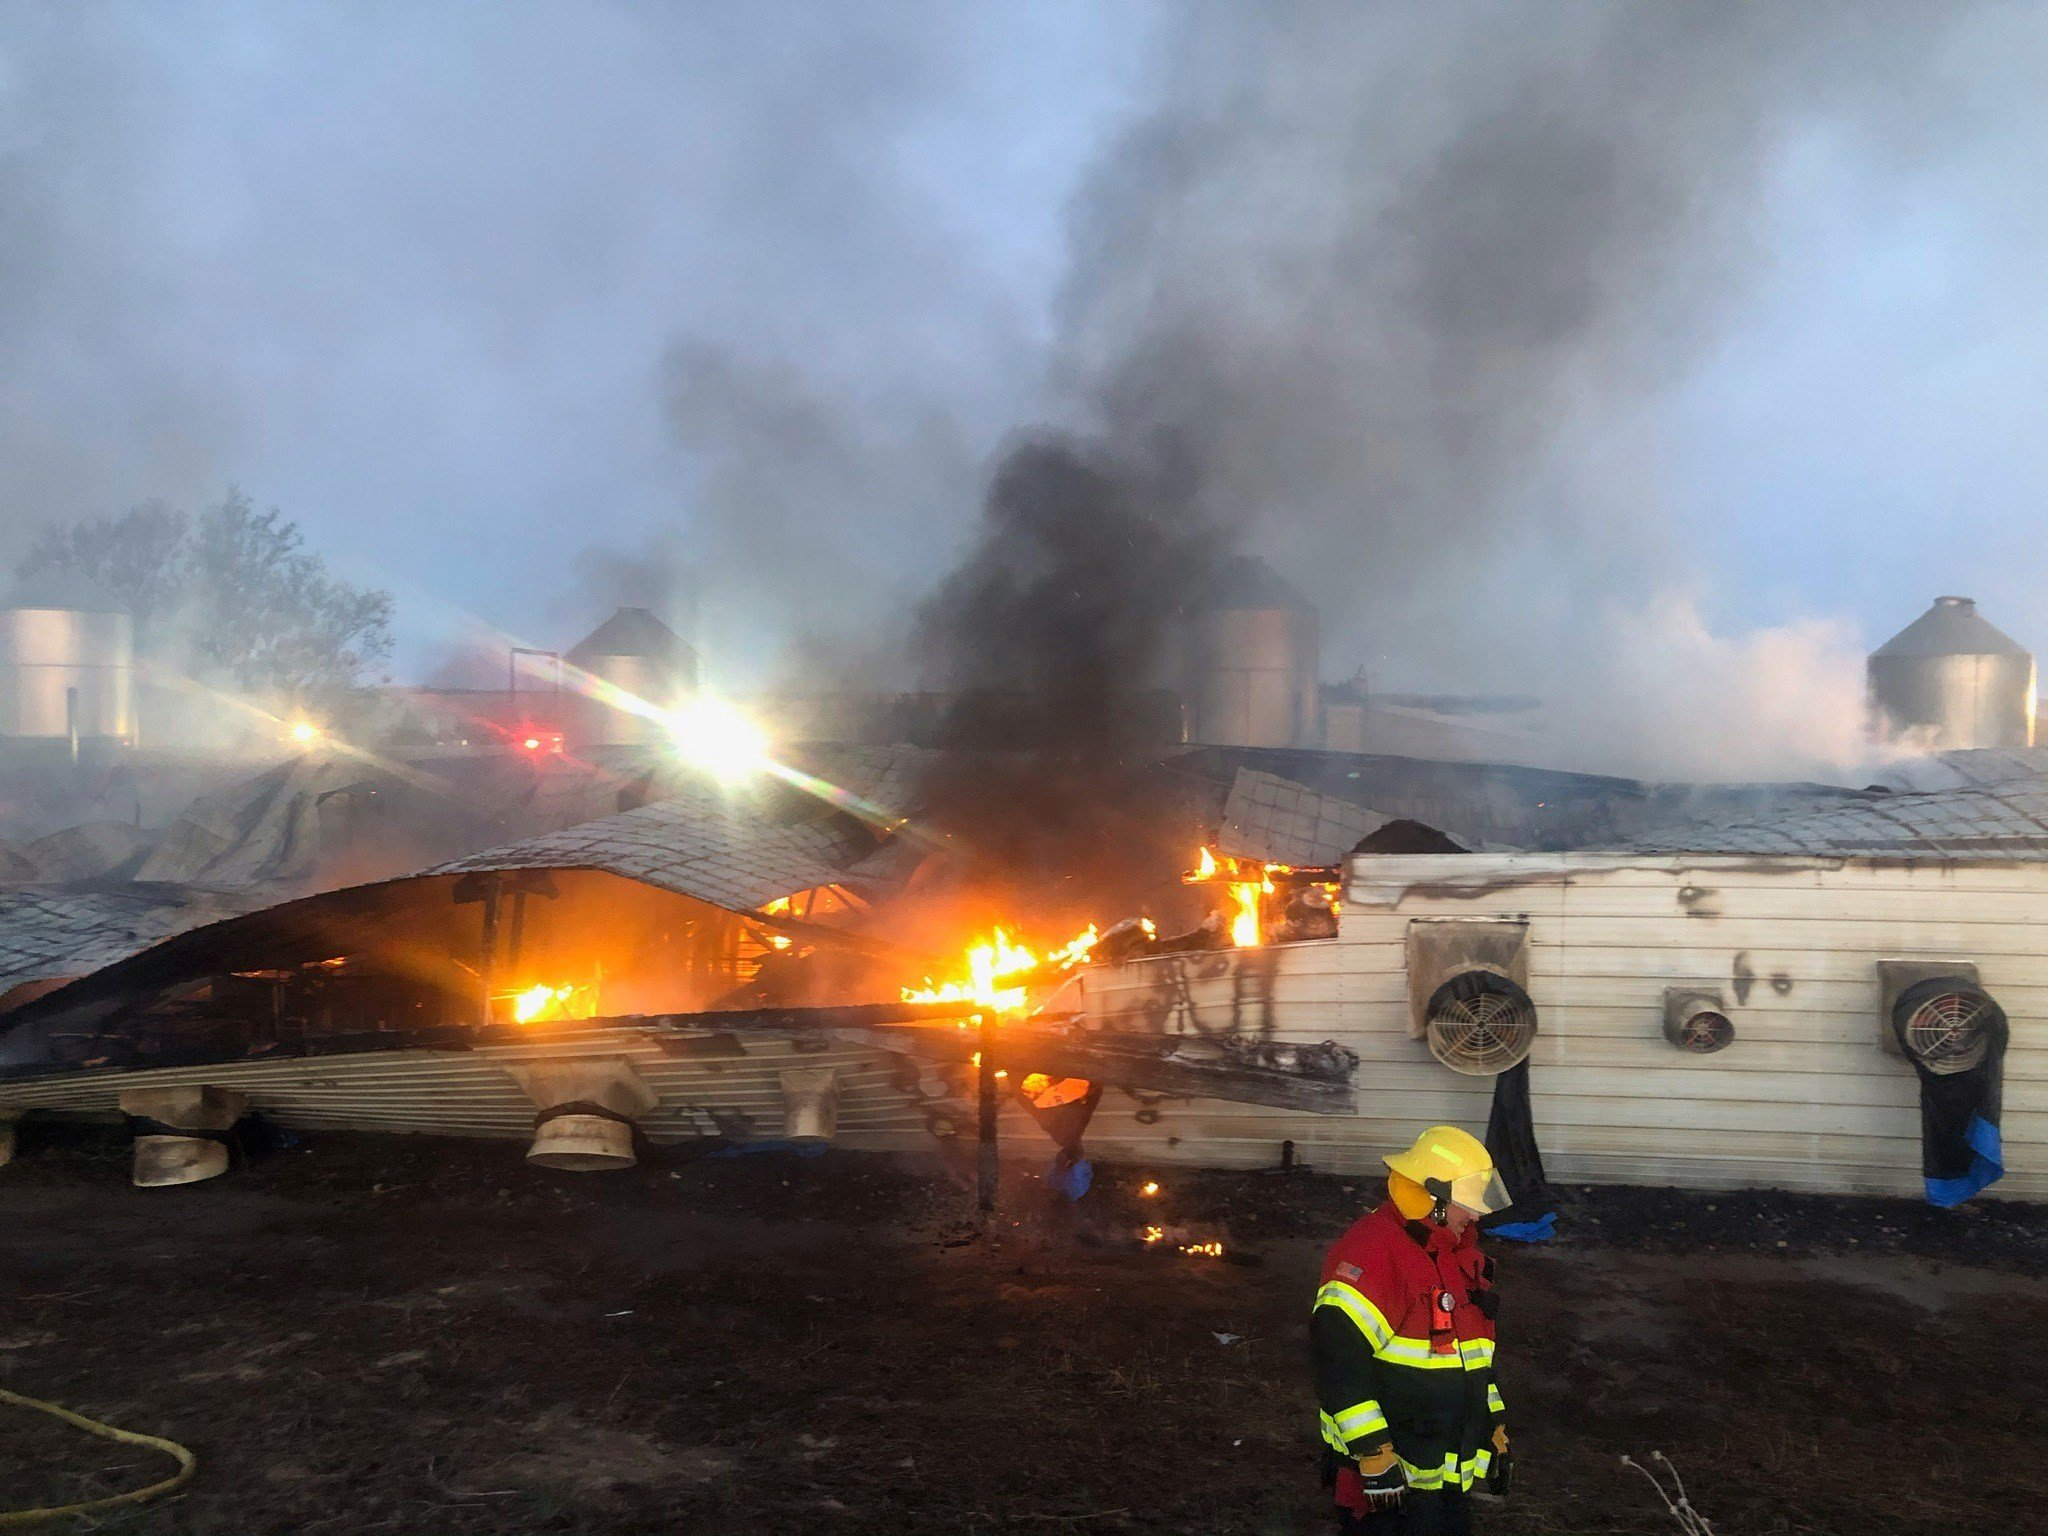 Approximately 10,000 hogs killed in fire at Pillen Family Farms